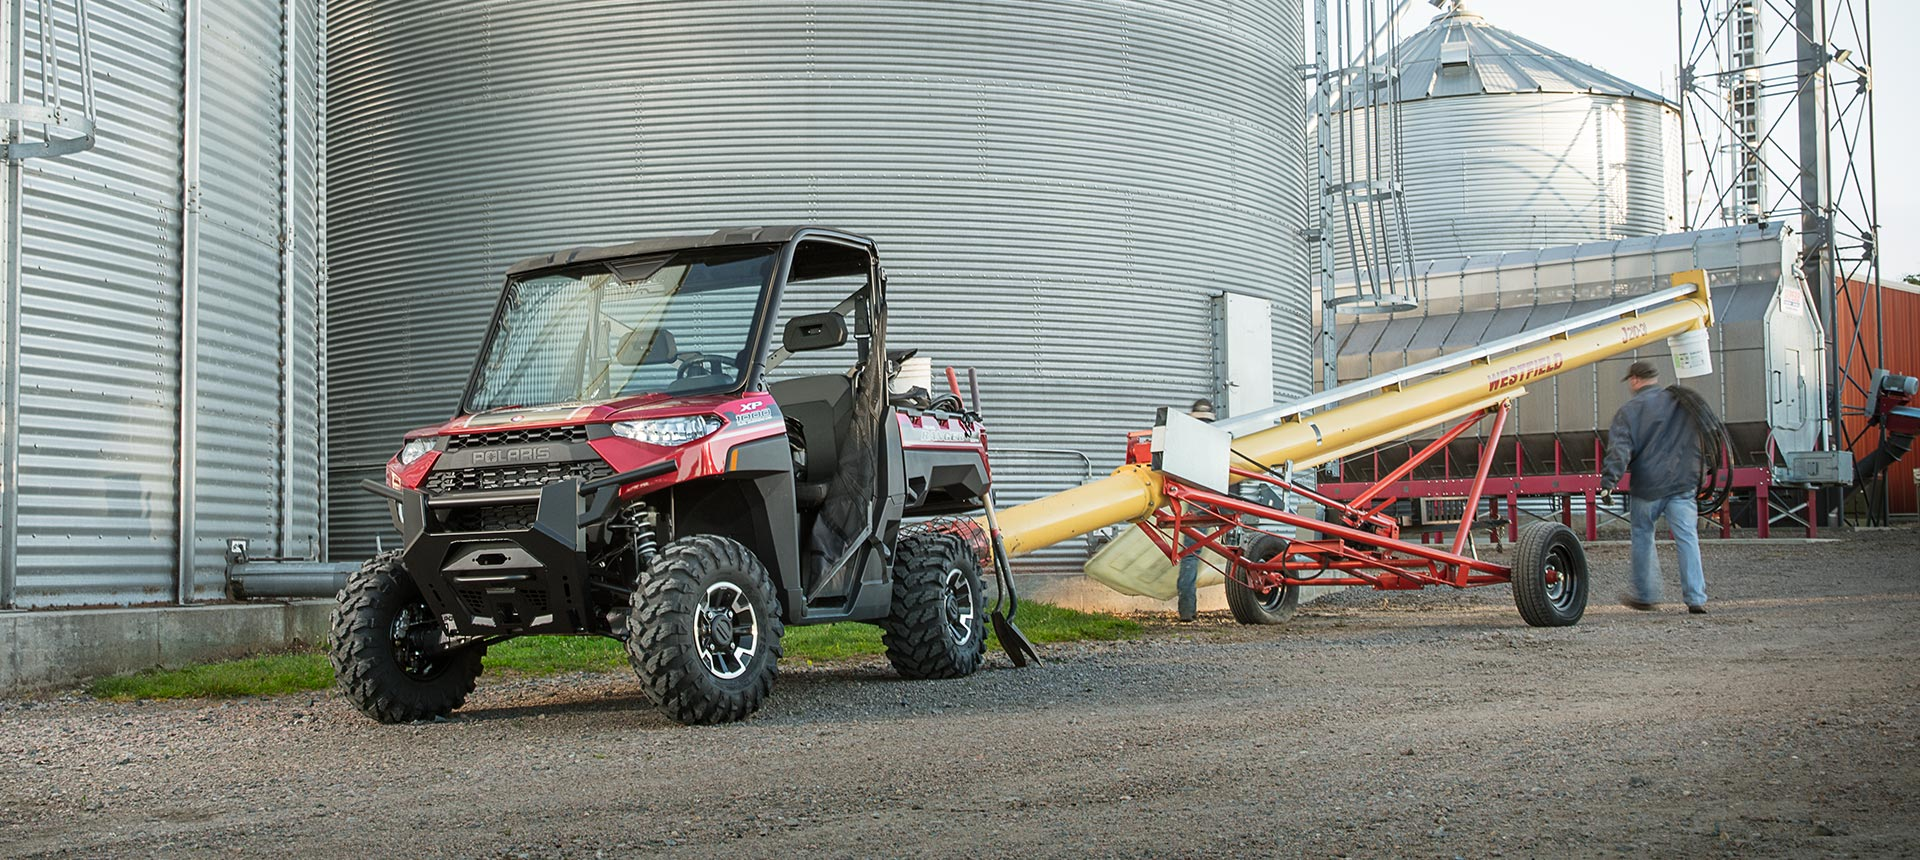 2019 Polaris Ranger XP 1000 EPS in Bedford Heights, Ohio